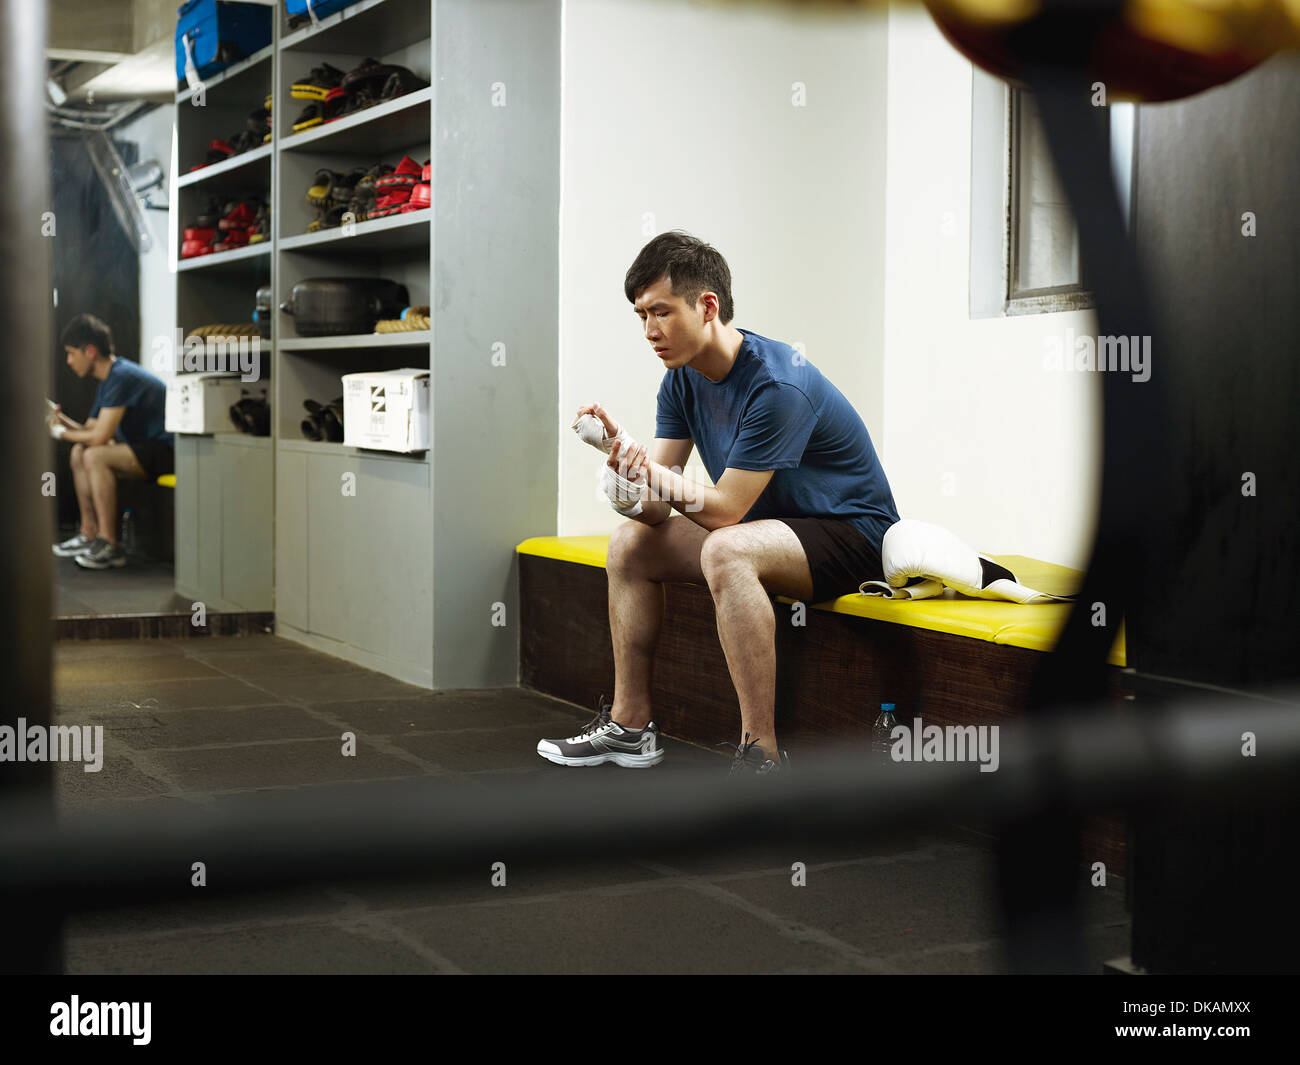 Boxer sitting in changing room - Stock Image